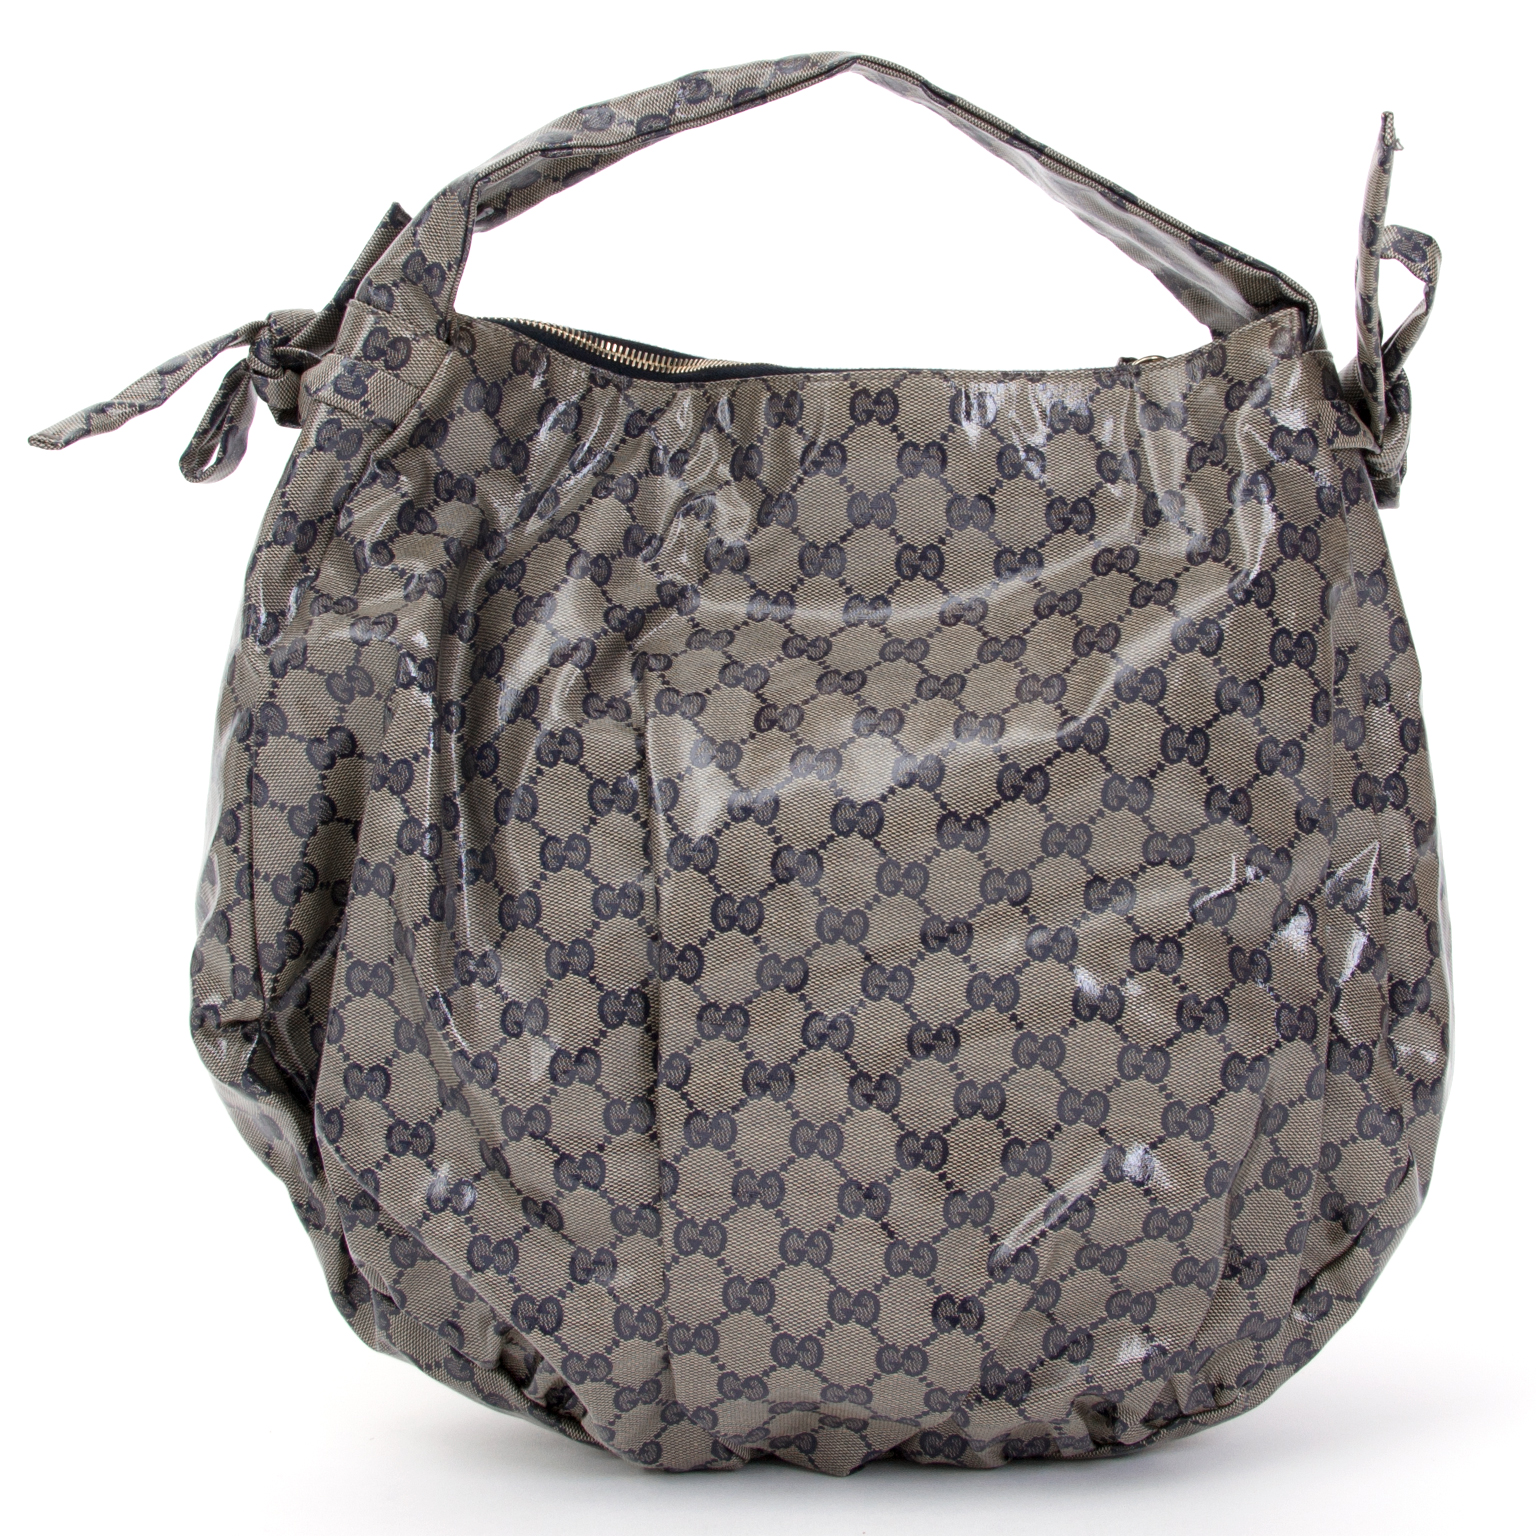 a52fb6c6b24 ... buy safe online second hand designer Gucci Hysteria Gg Coated Canvas  Hobo Bag